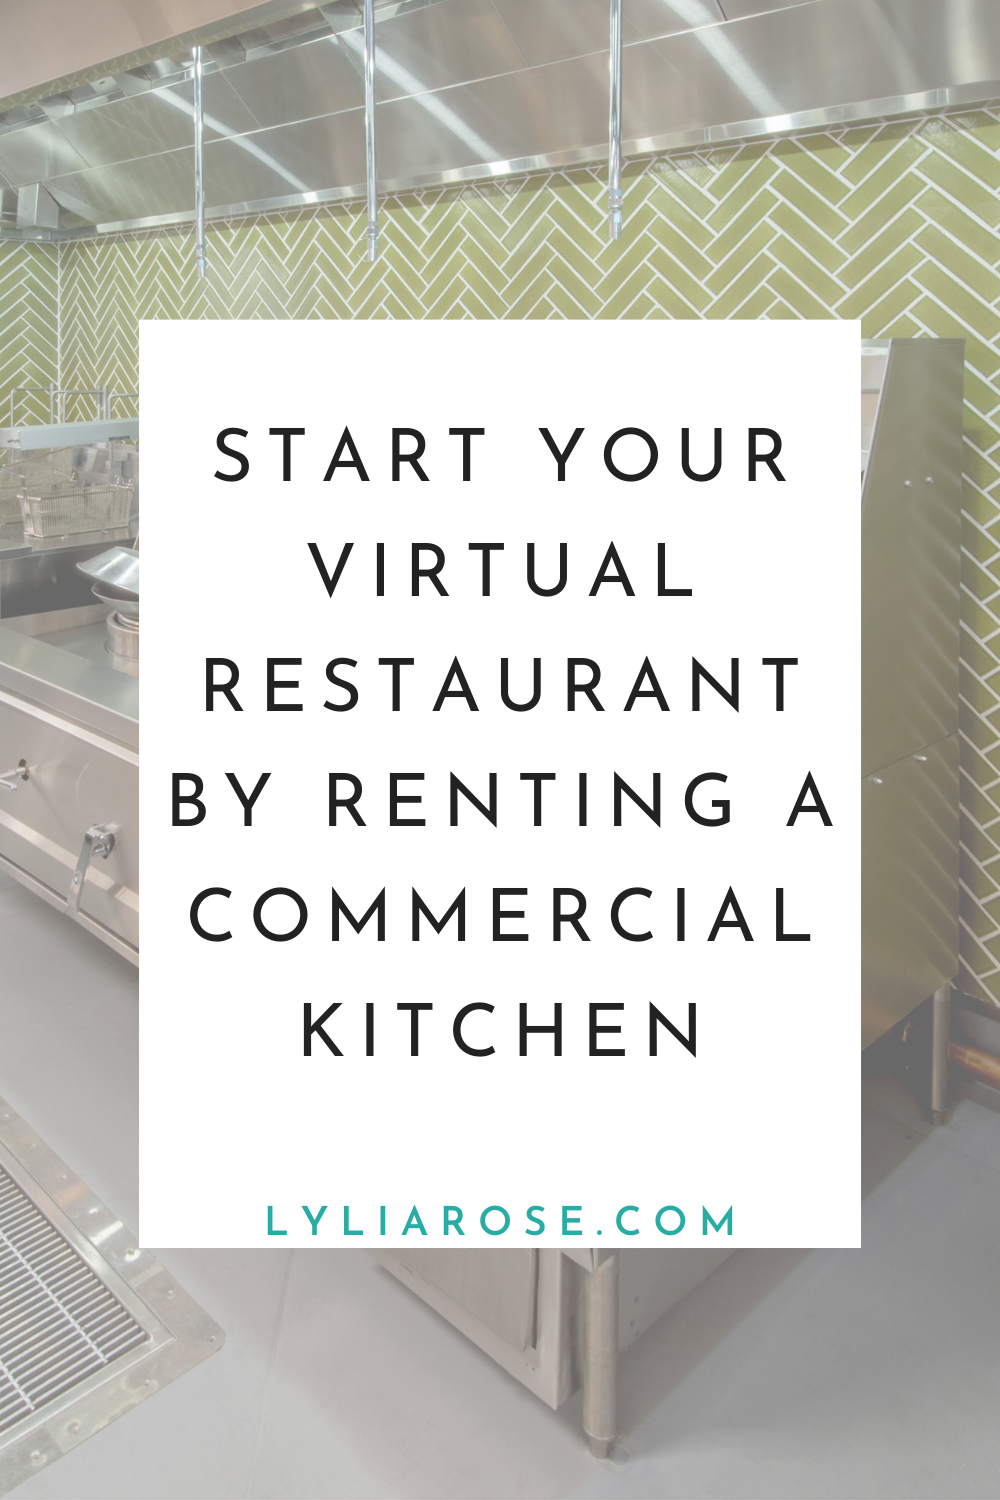 Start your virtual restaurant by renting a commercial kitchen